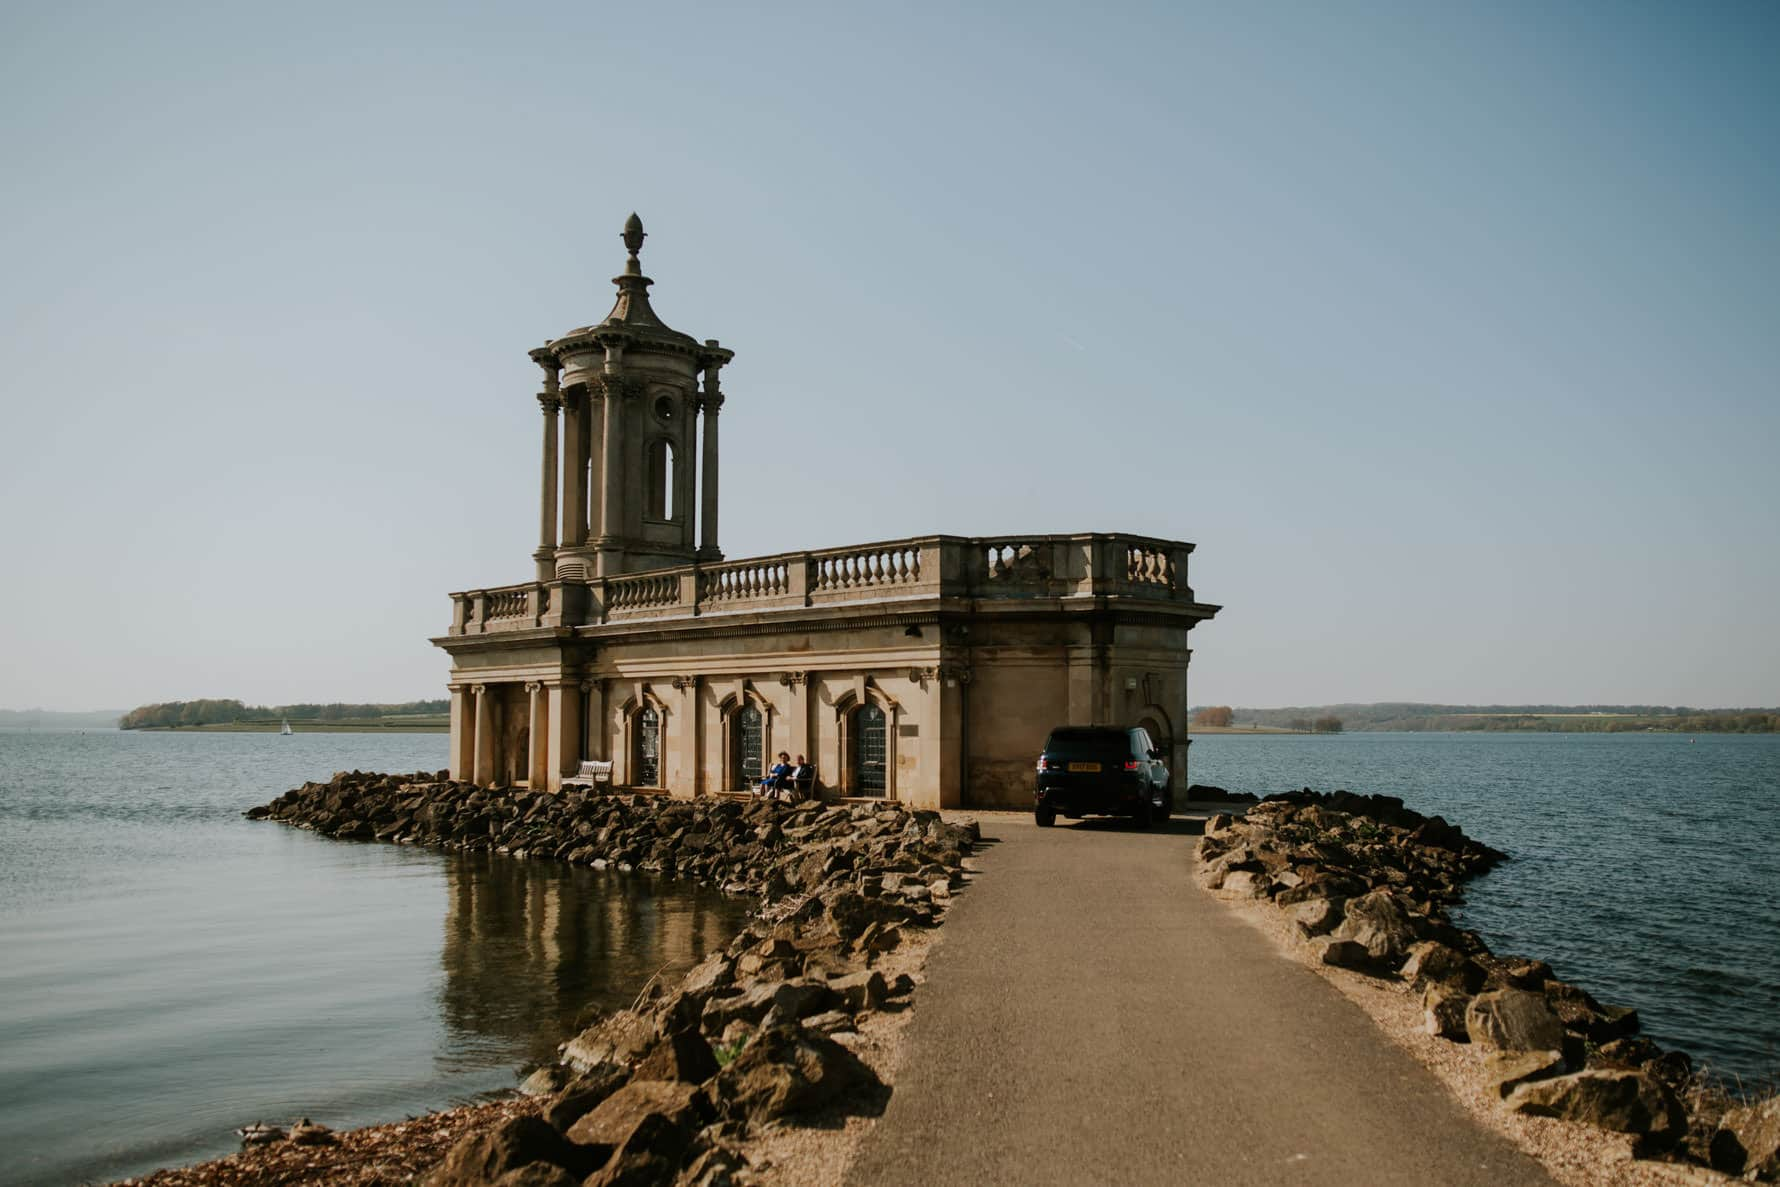 normanton church wedding photography- the church